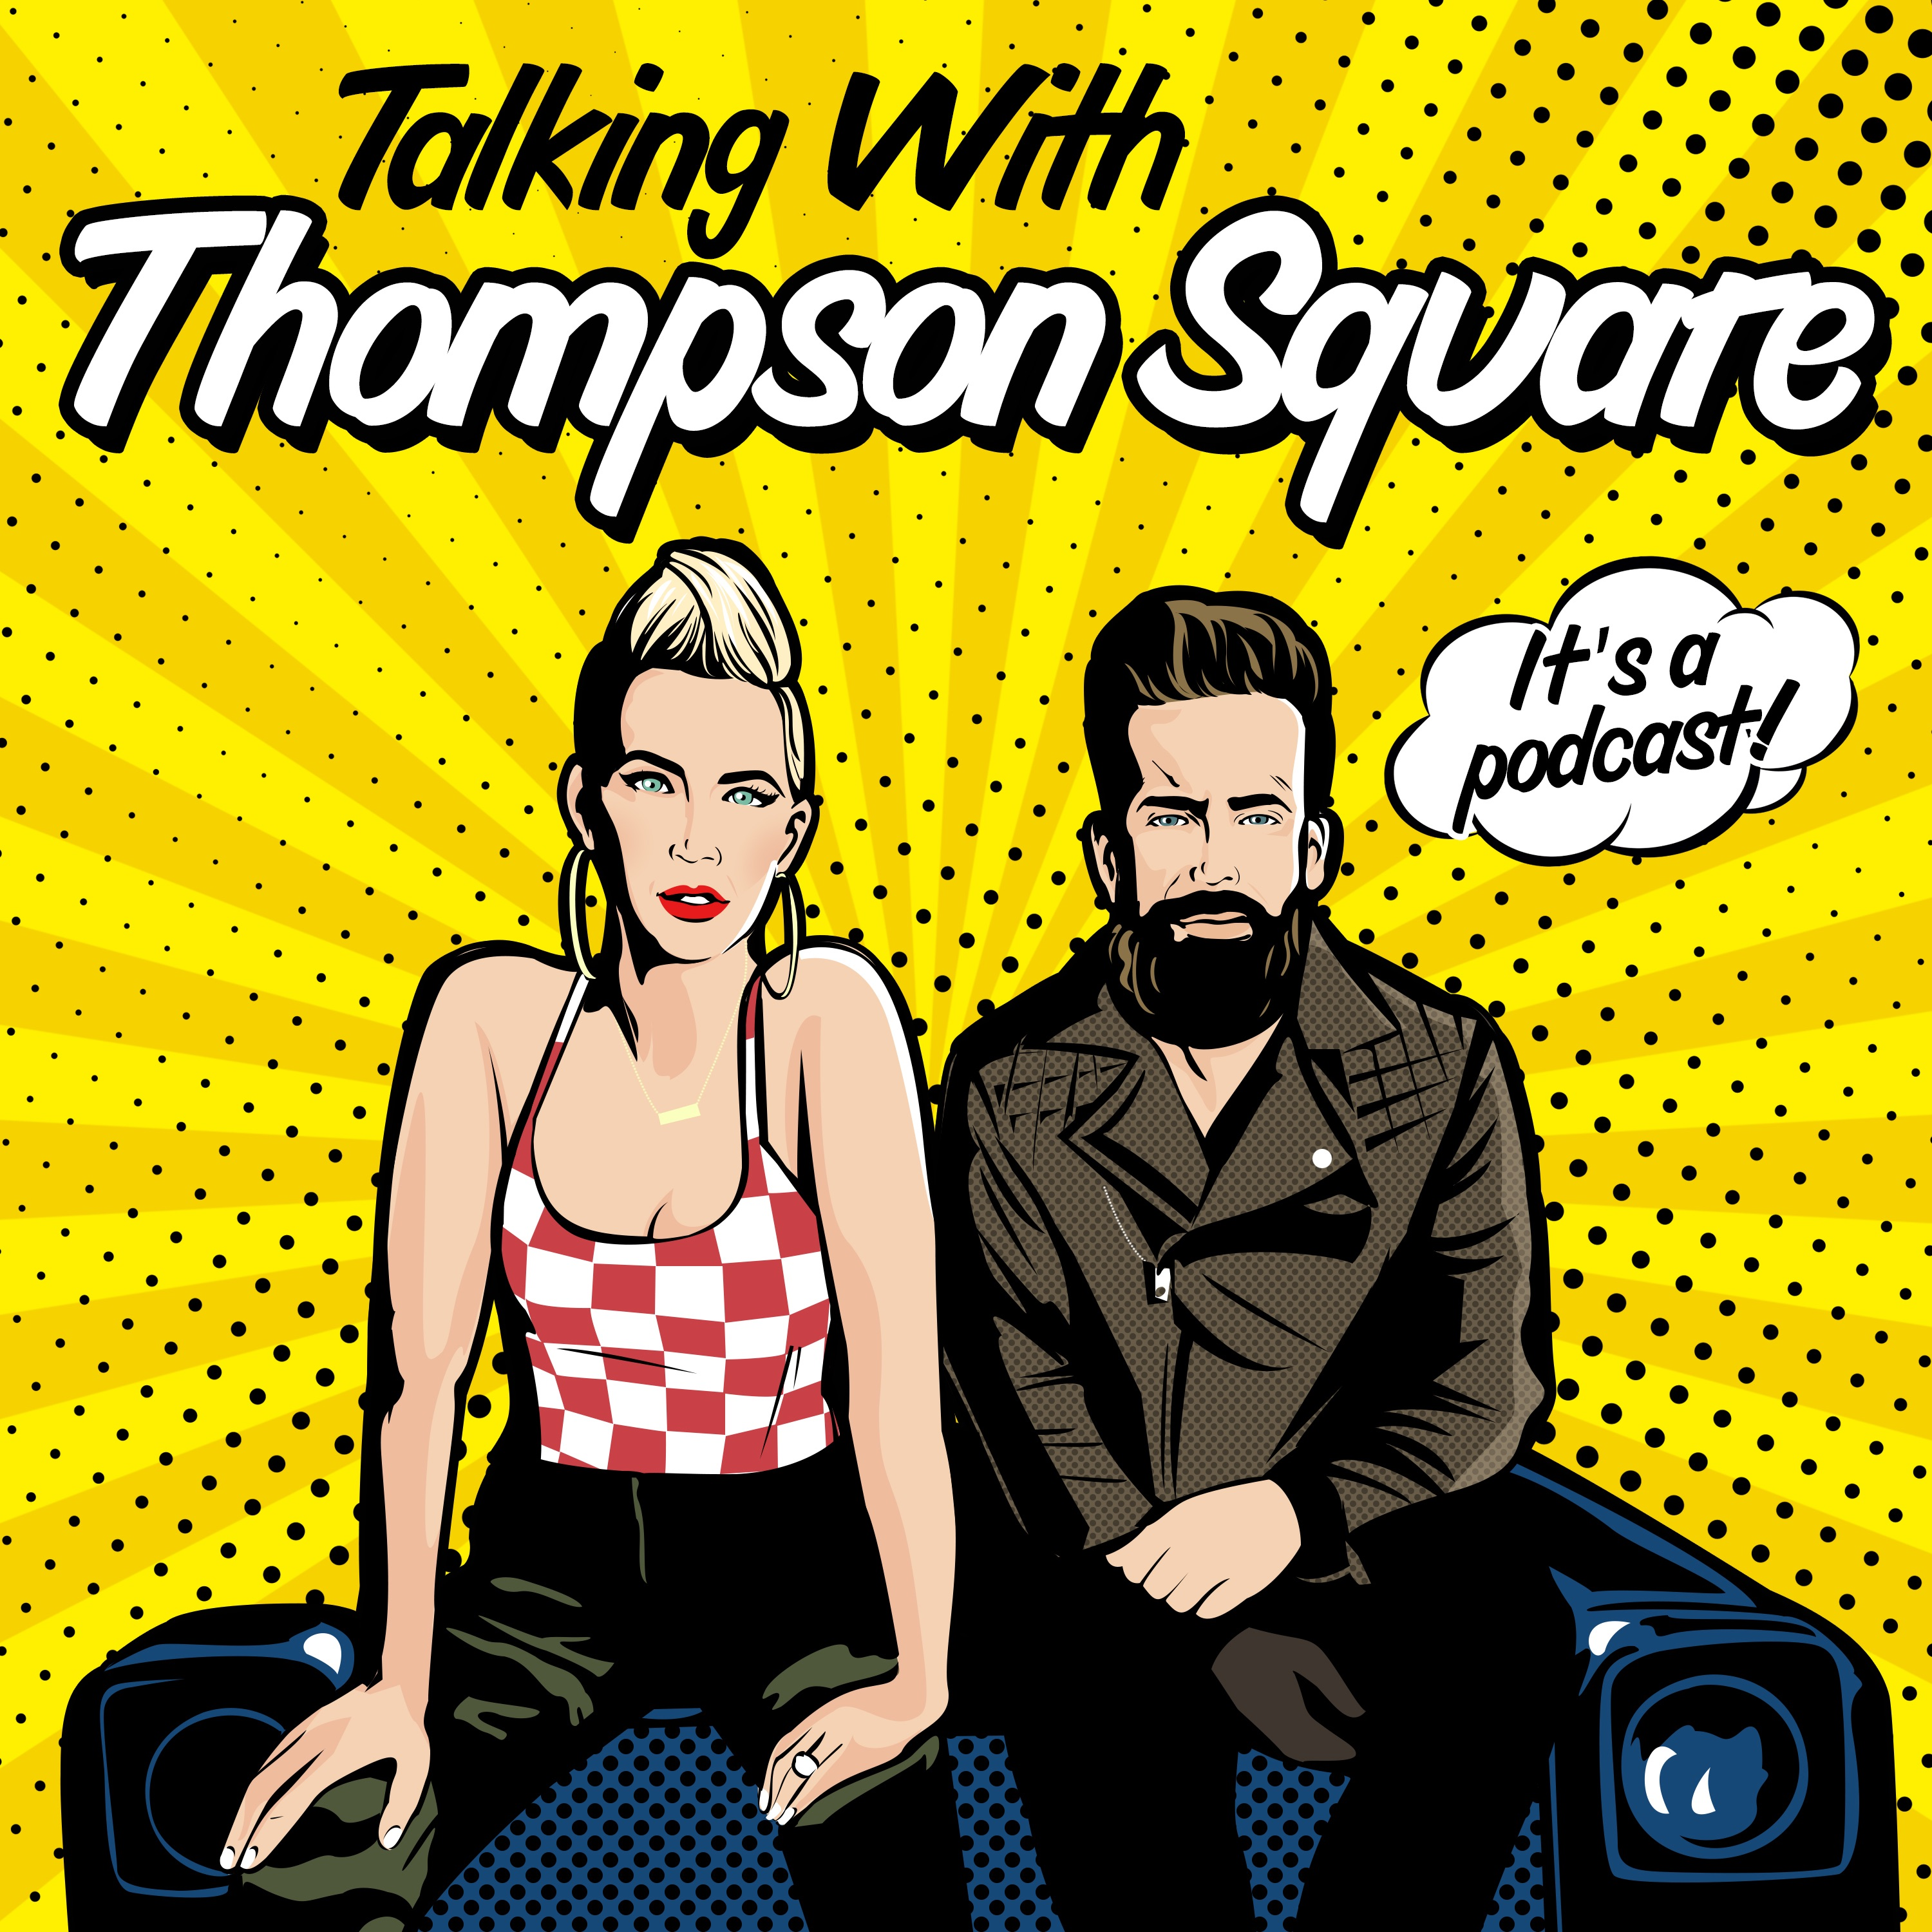 Talking with Thompson Square show art